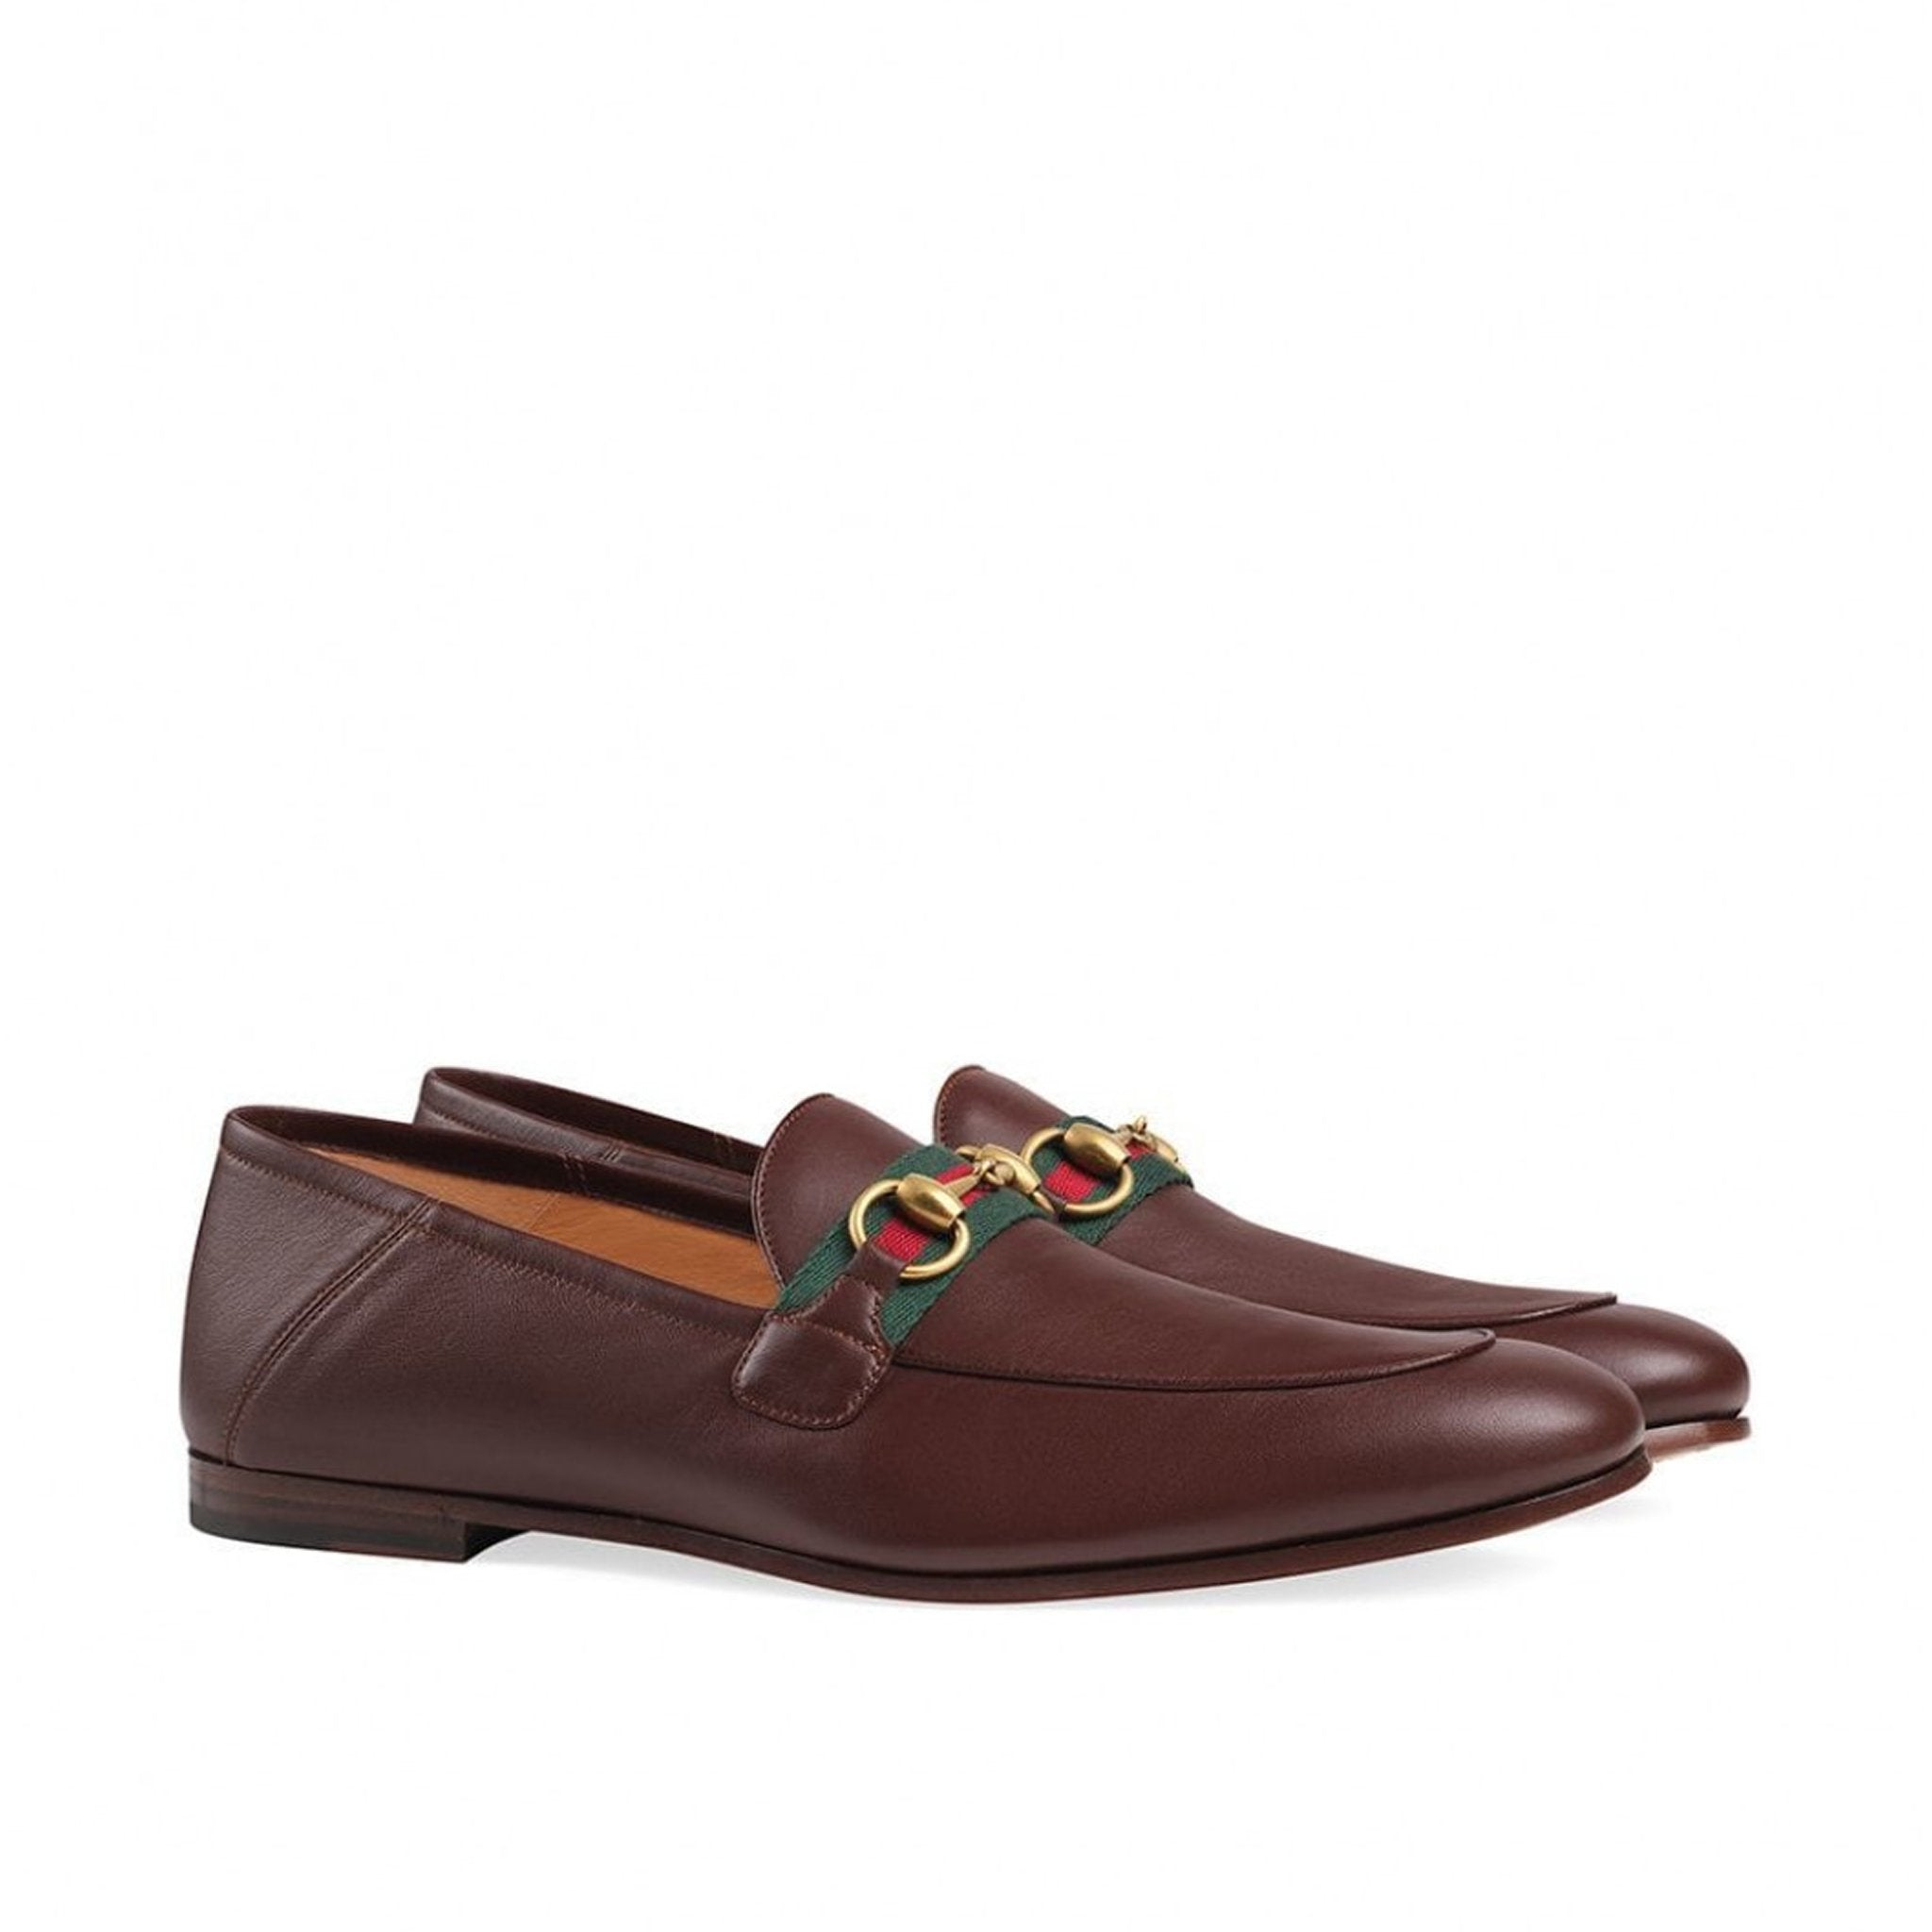 Gucci Loafers on discount